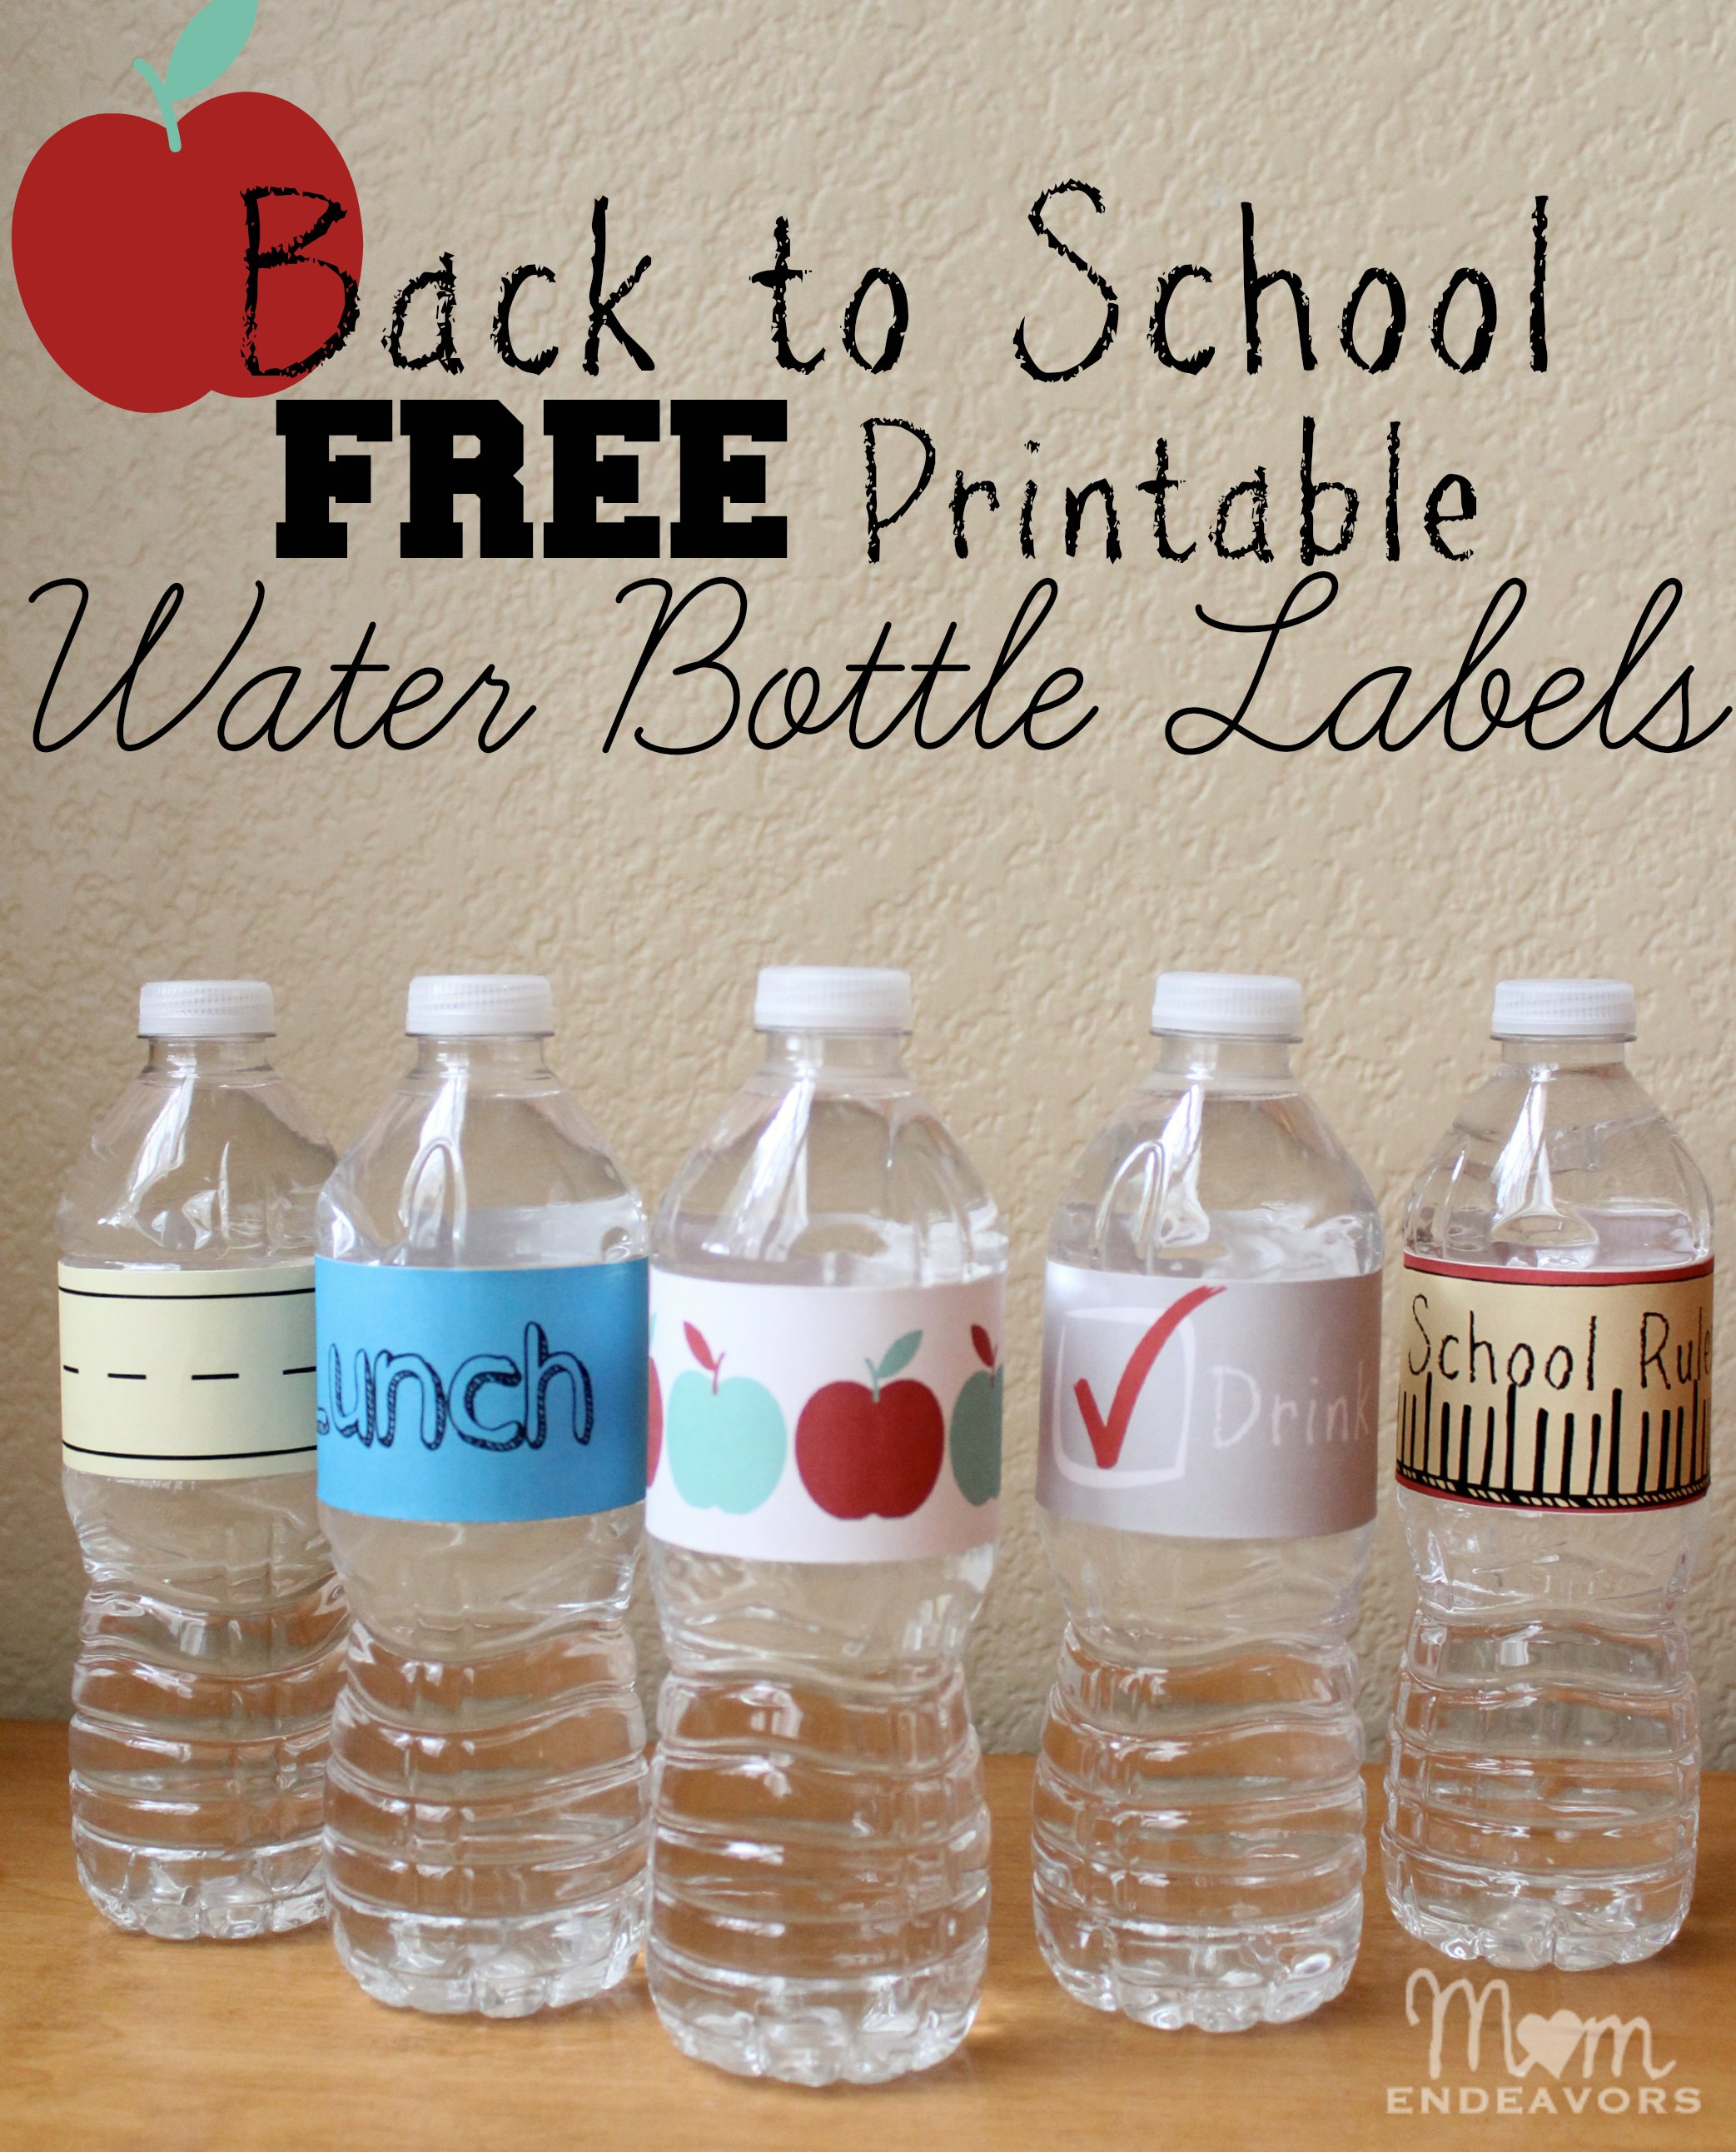 Epic image with free printable water bottle labels